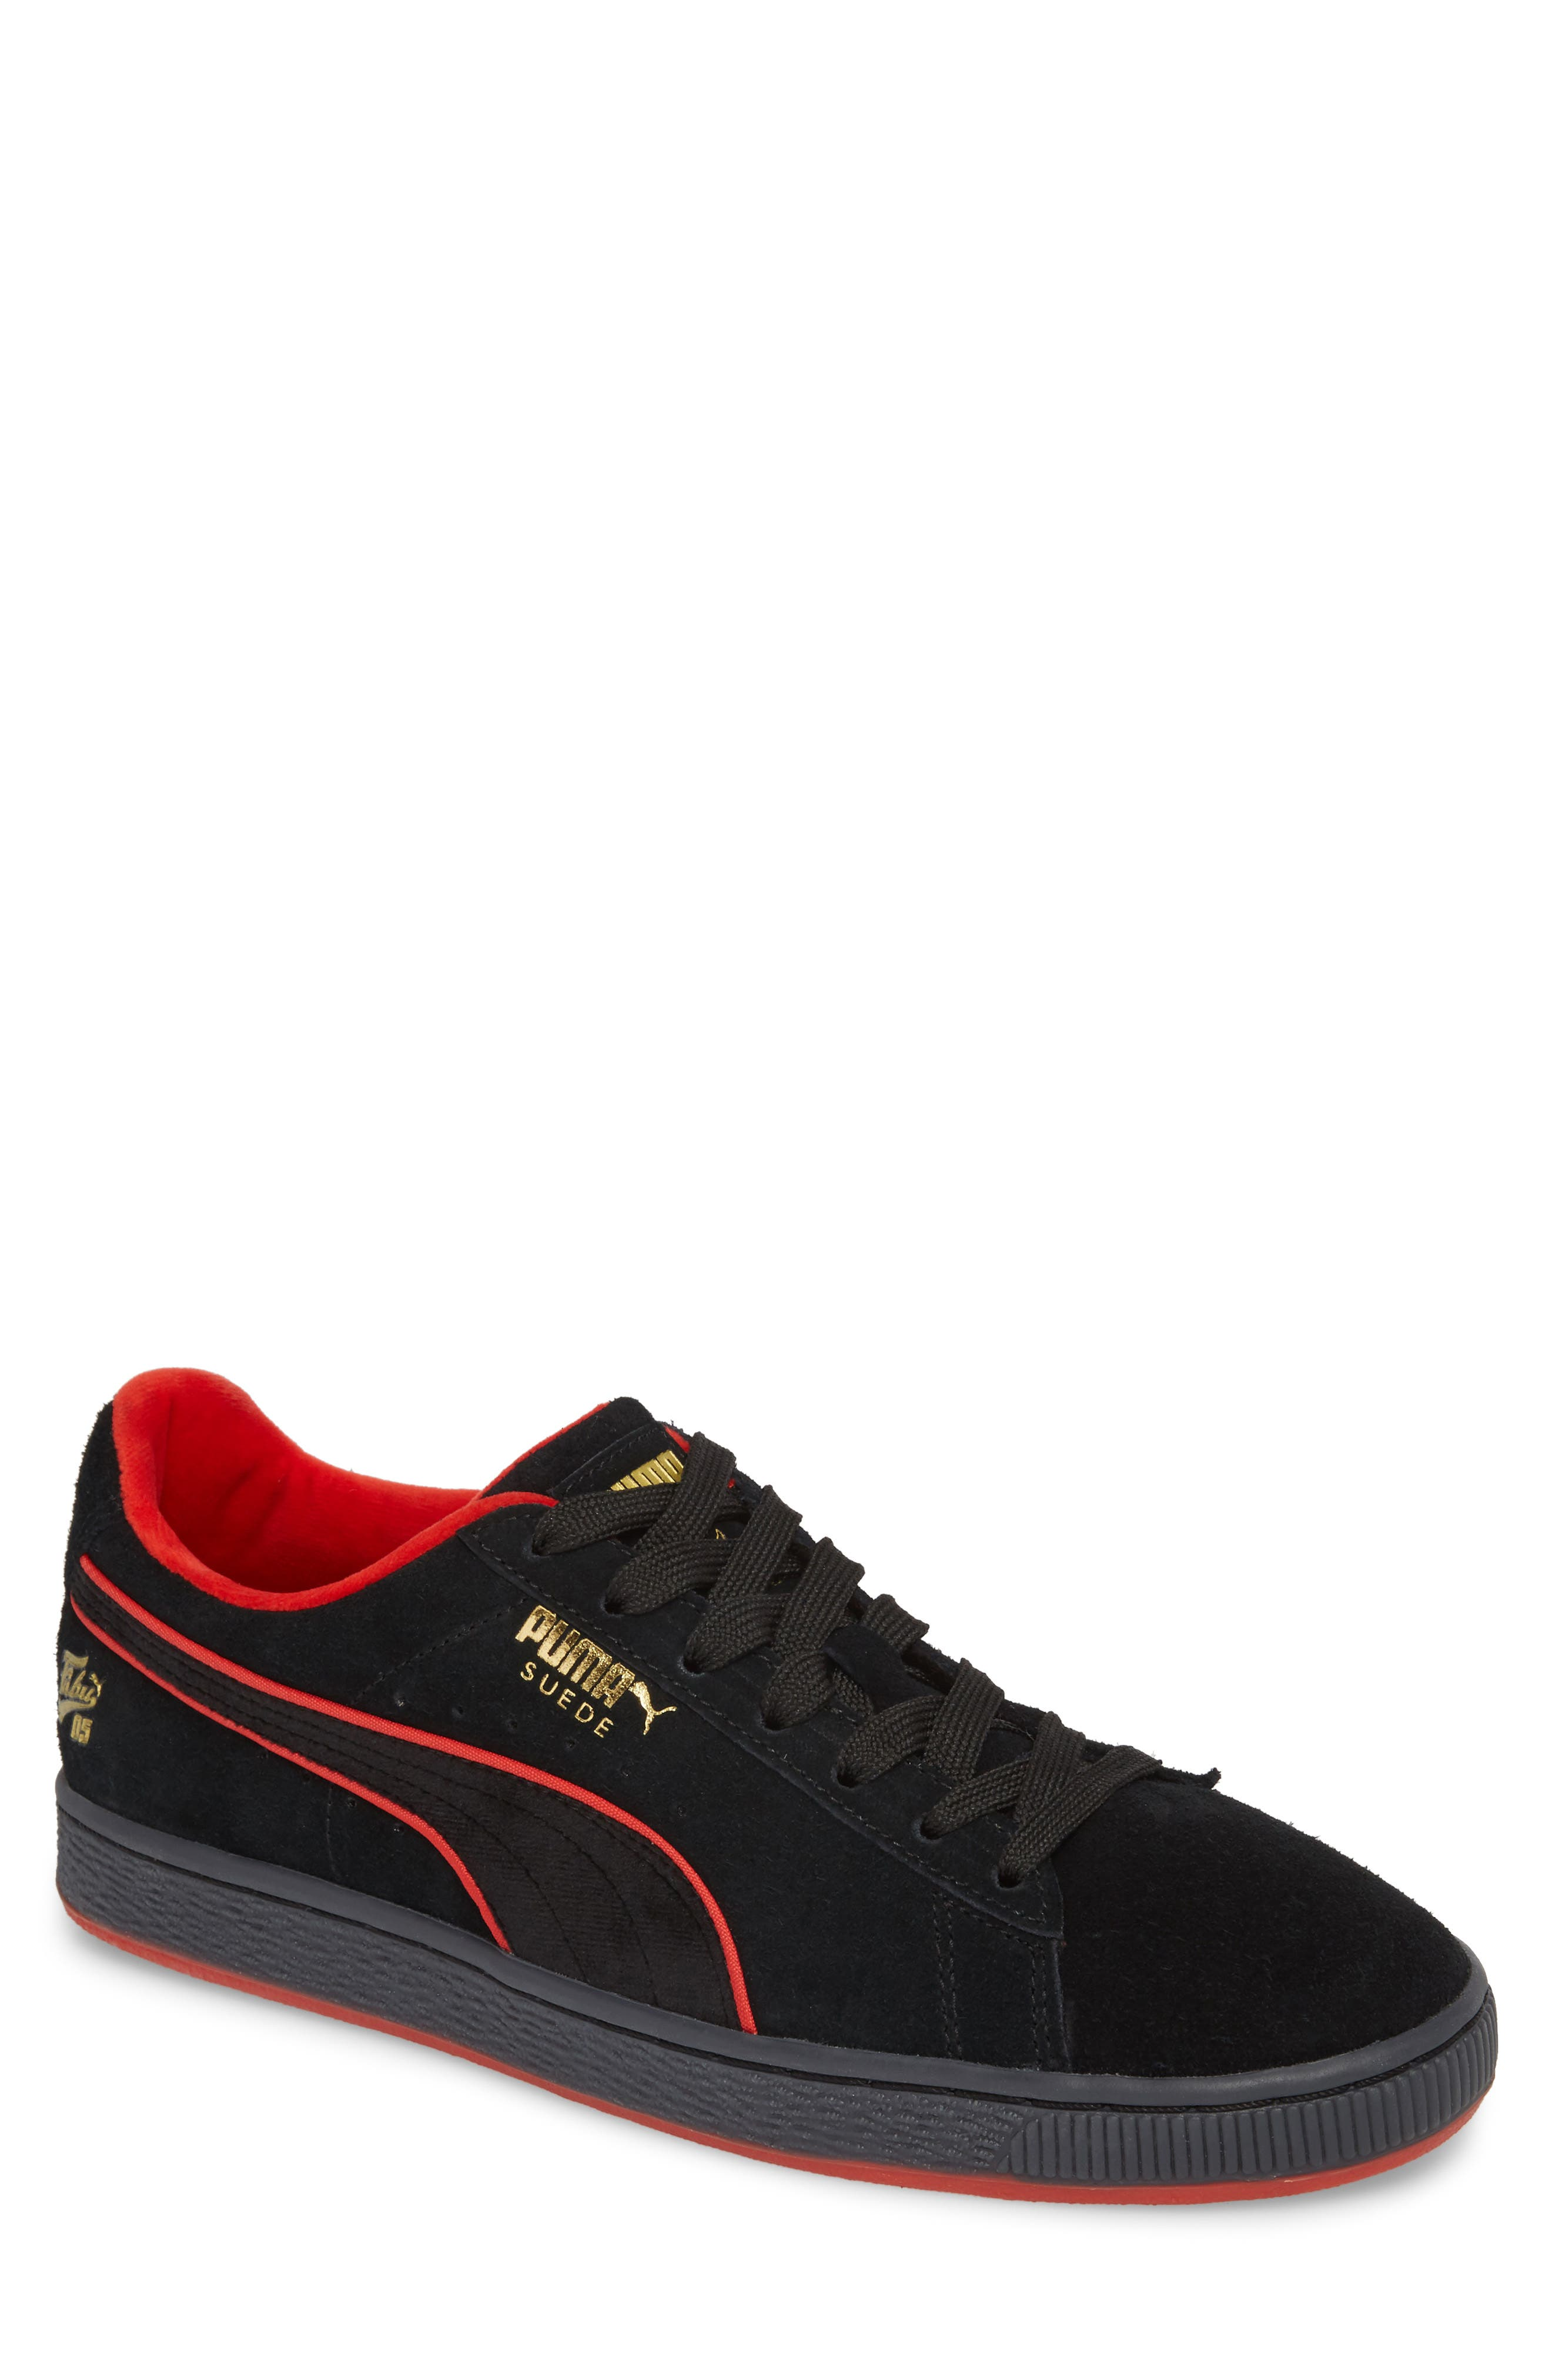 x FUBU Suede Classic Sneaker,                             Main thumbnail 1, color,                             Puma Black - High Risk Red